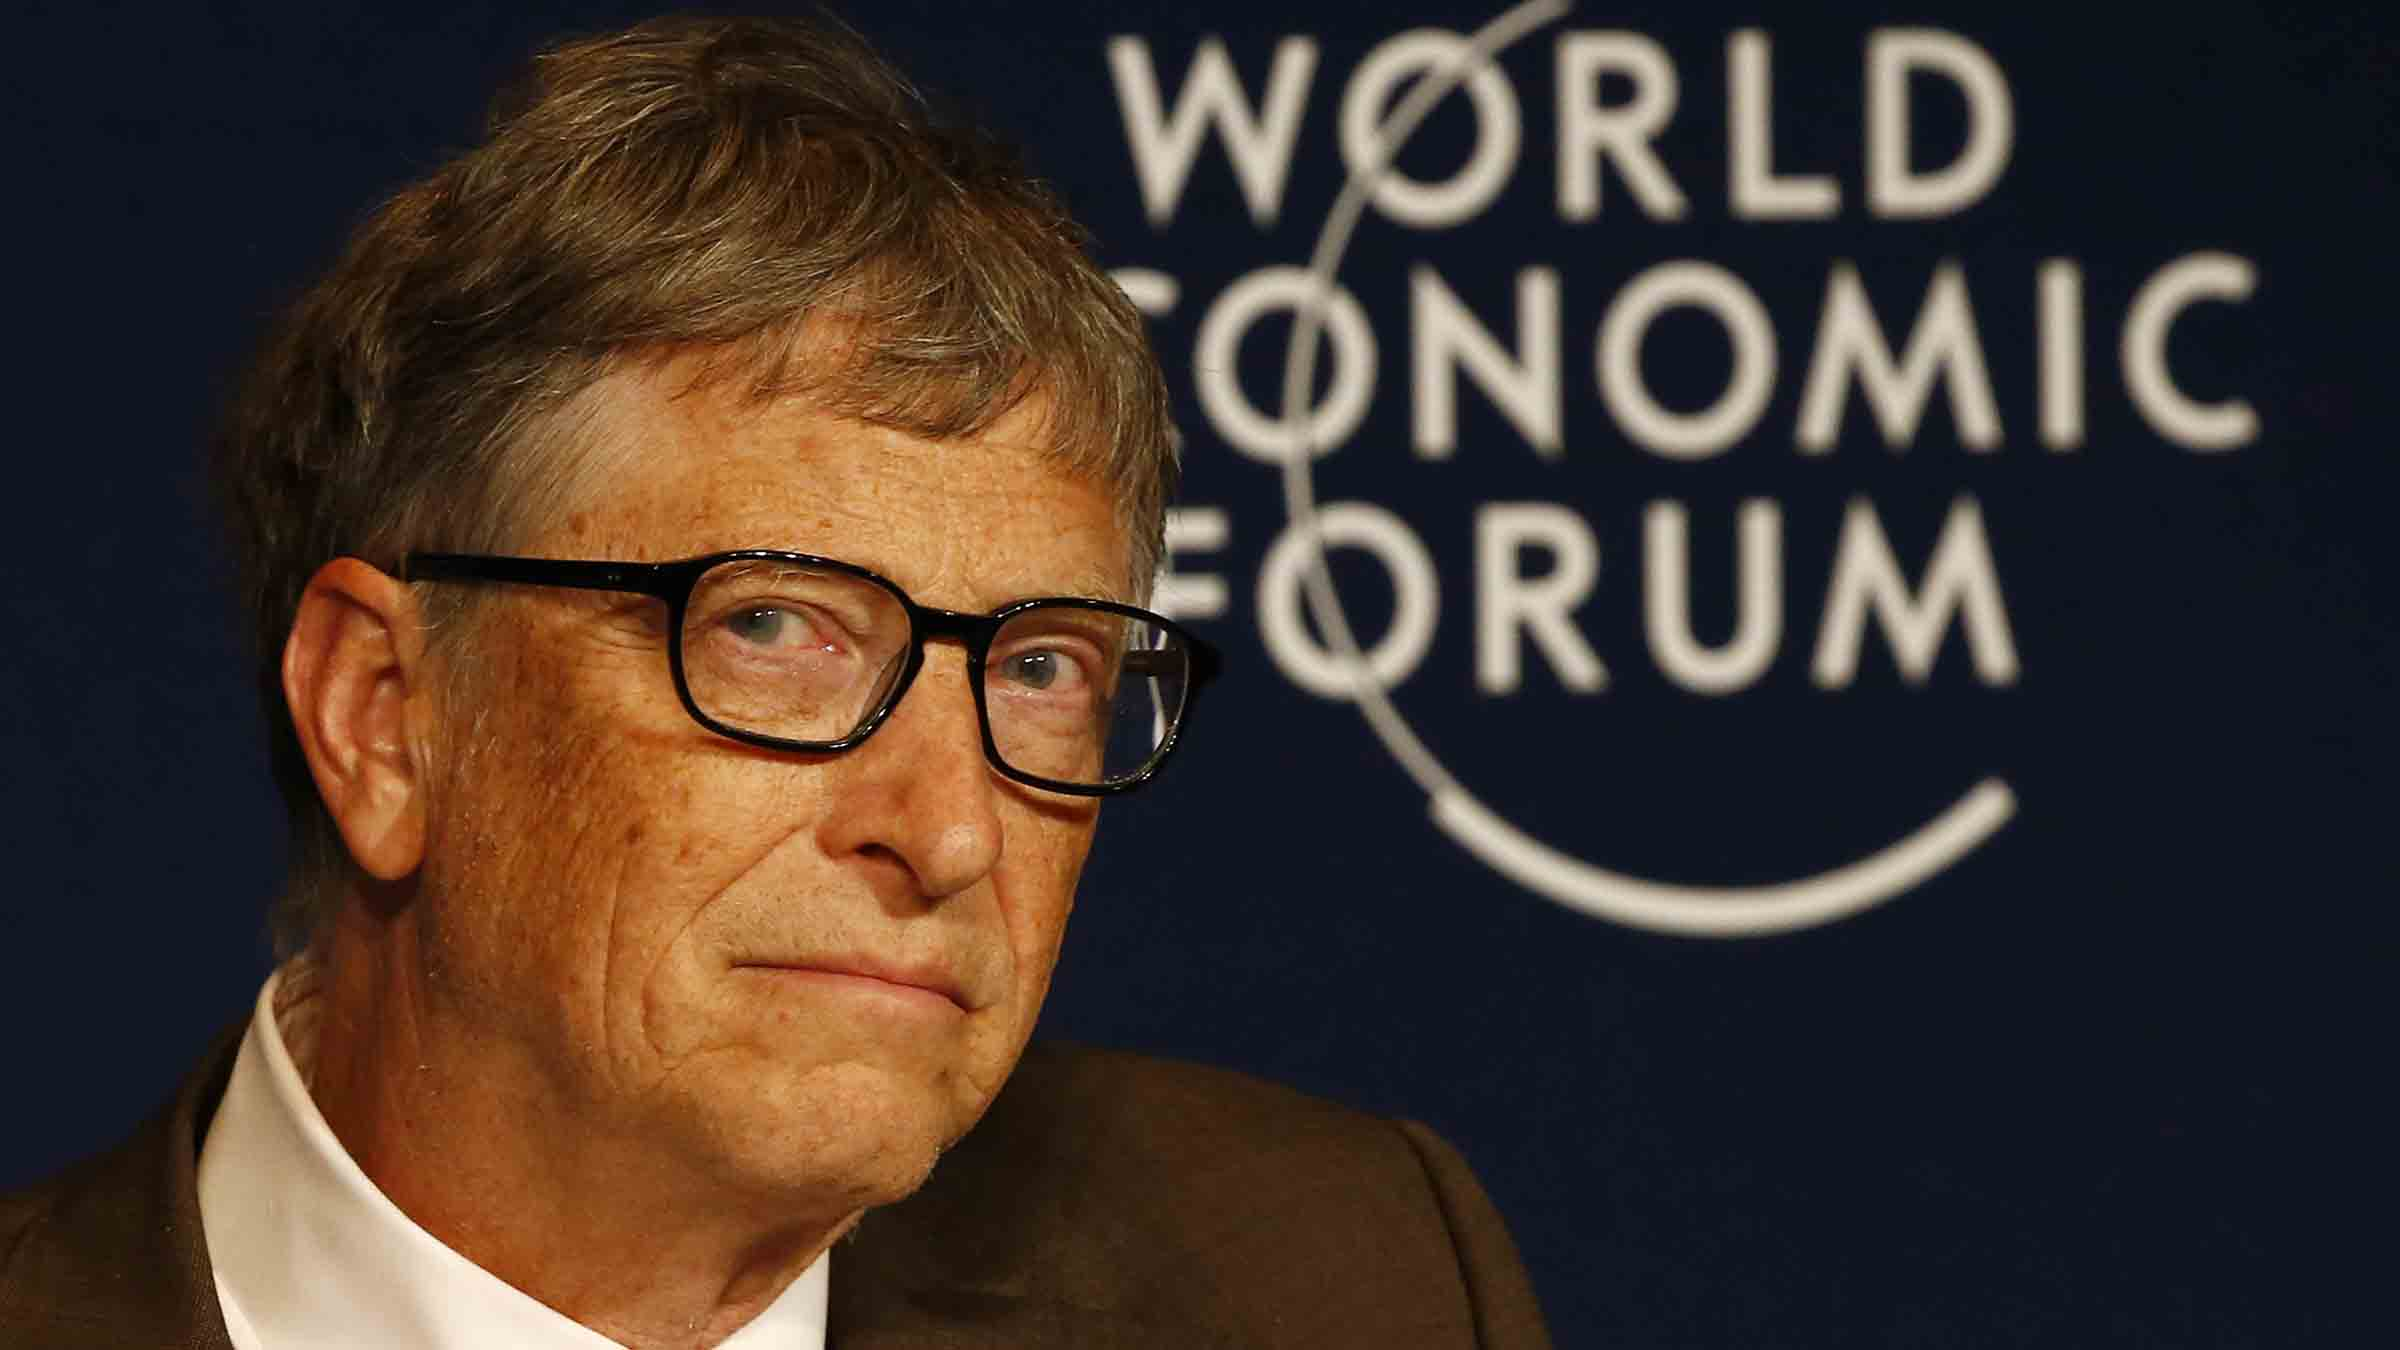 Microsoft co-founder Gates attends the annual meeting of the World Economic Forum (WEF) in Davos